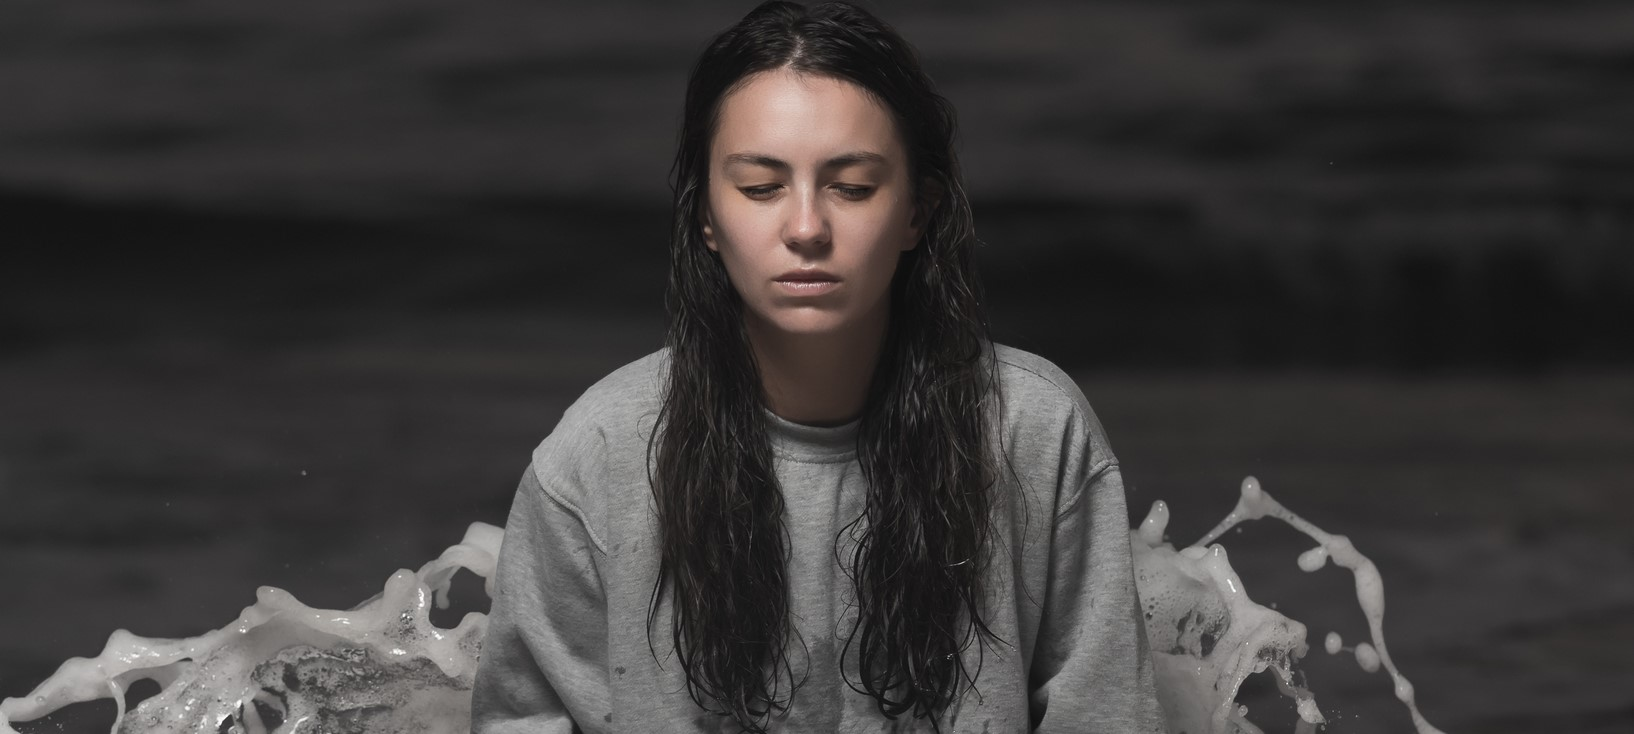 AMY SHARK RELEASES 'NIGHT THINKER' EP TODAY! STRAIGHT TO #1 ON ITUNES!